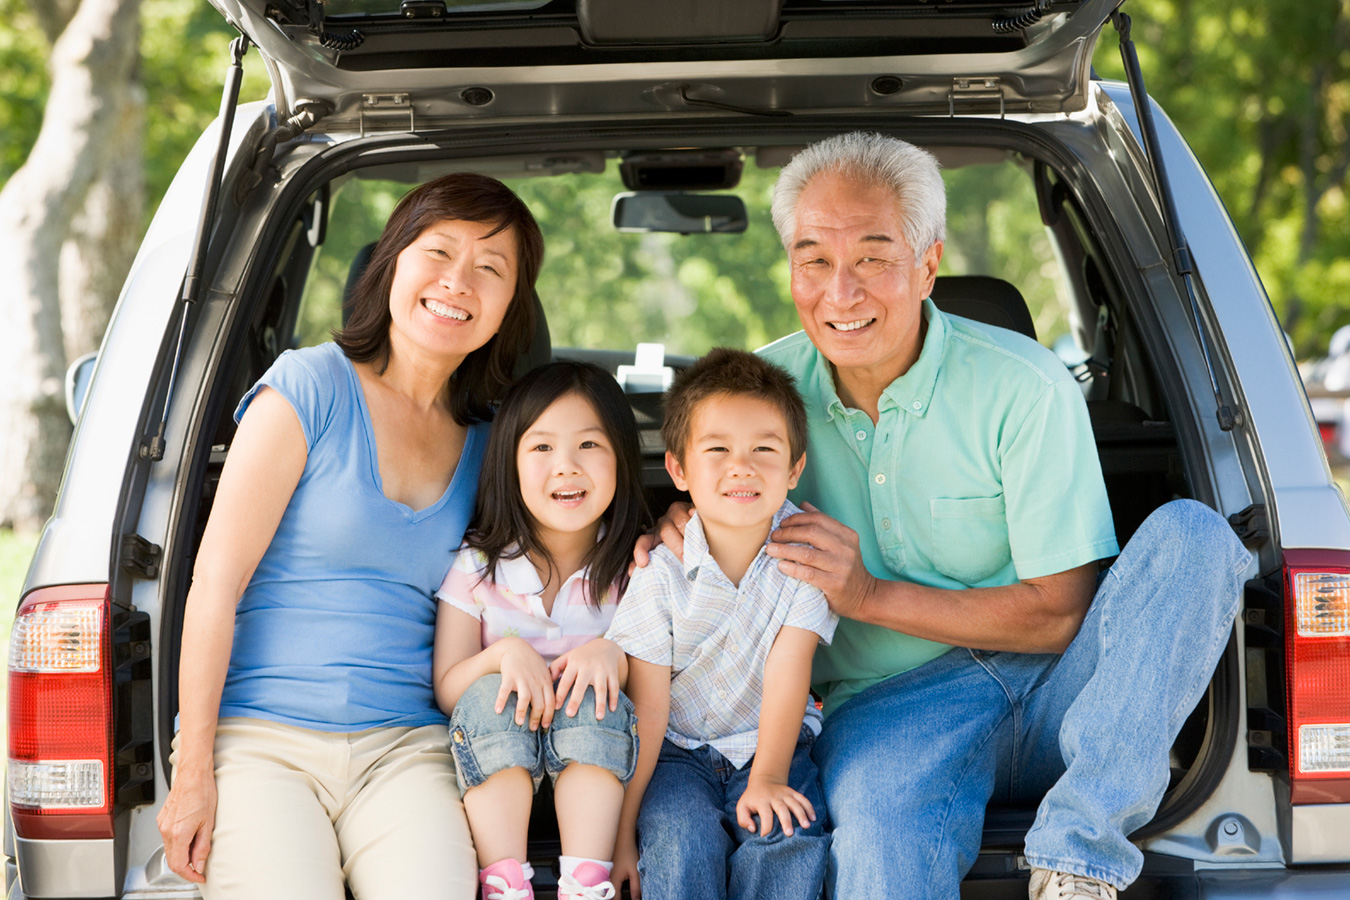 family insurance solution daiju yamaguchi yoshino in san diego, california